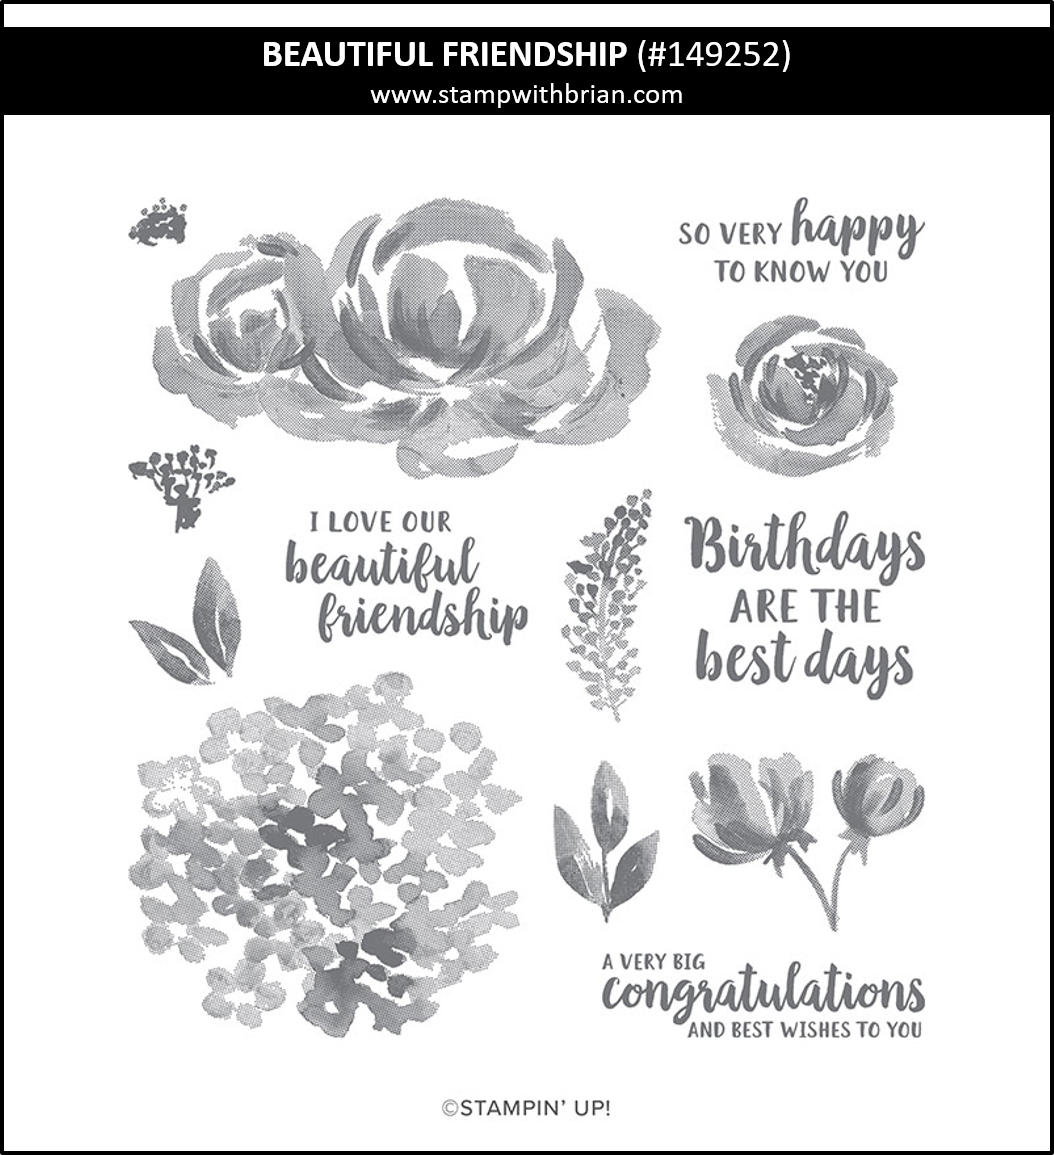 Beautiful Friendship, Stampin' Up! 149252